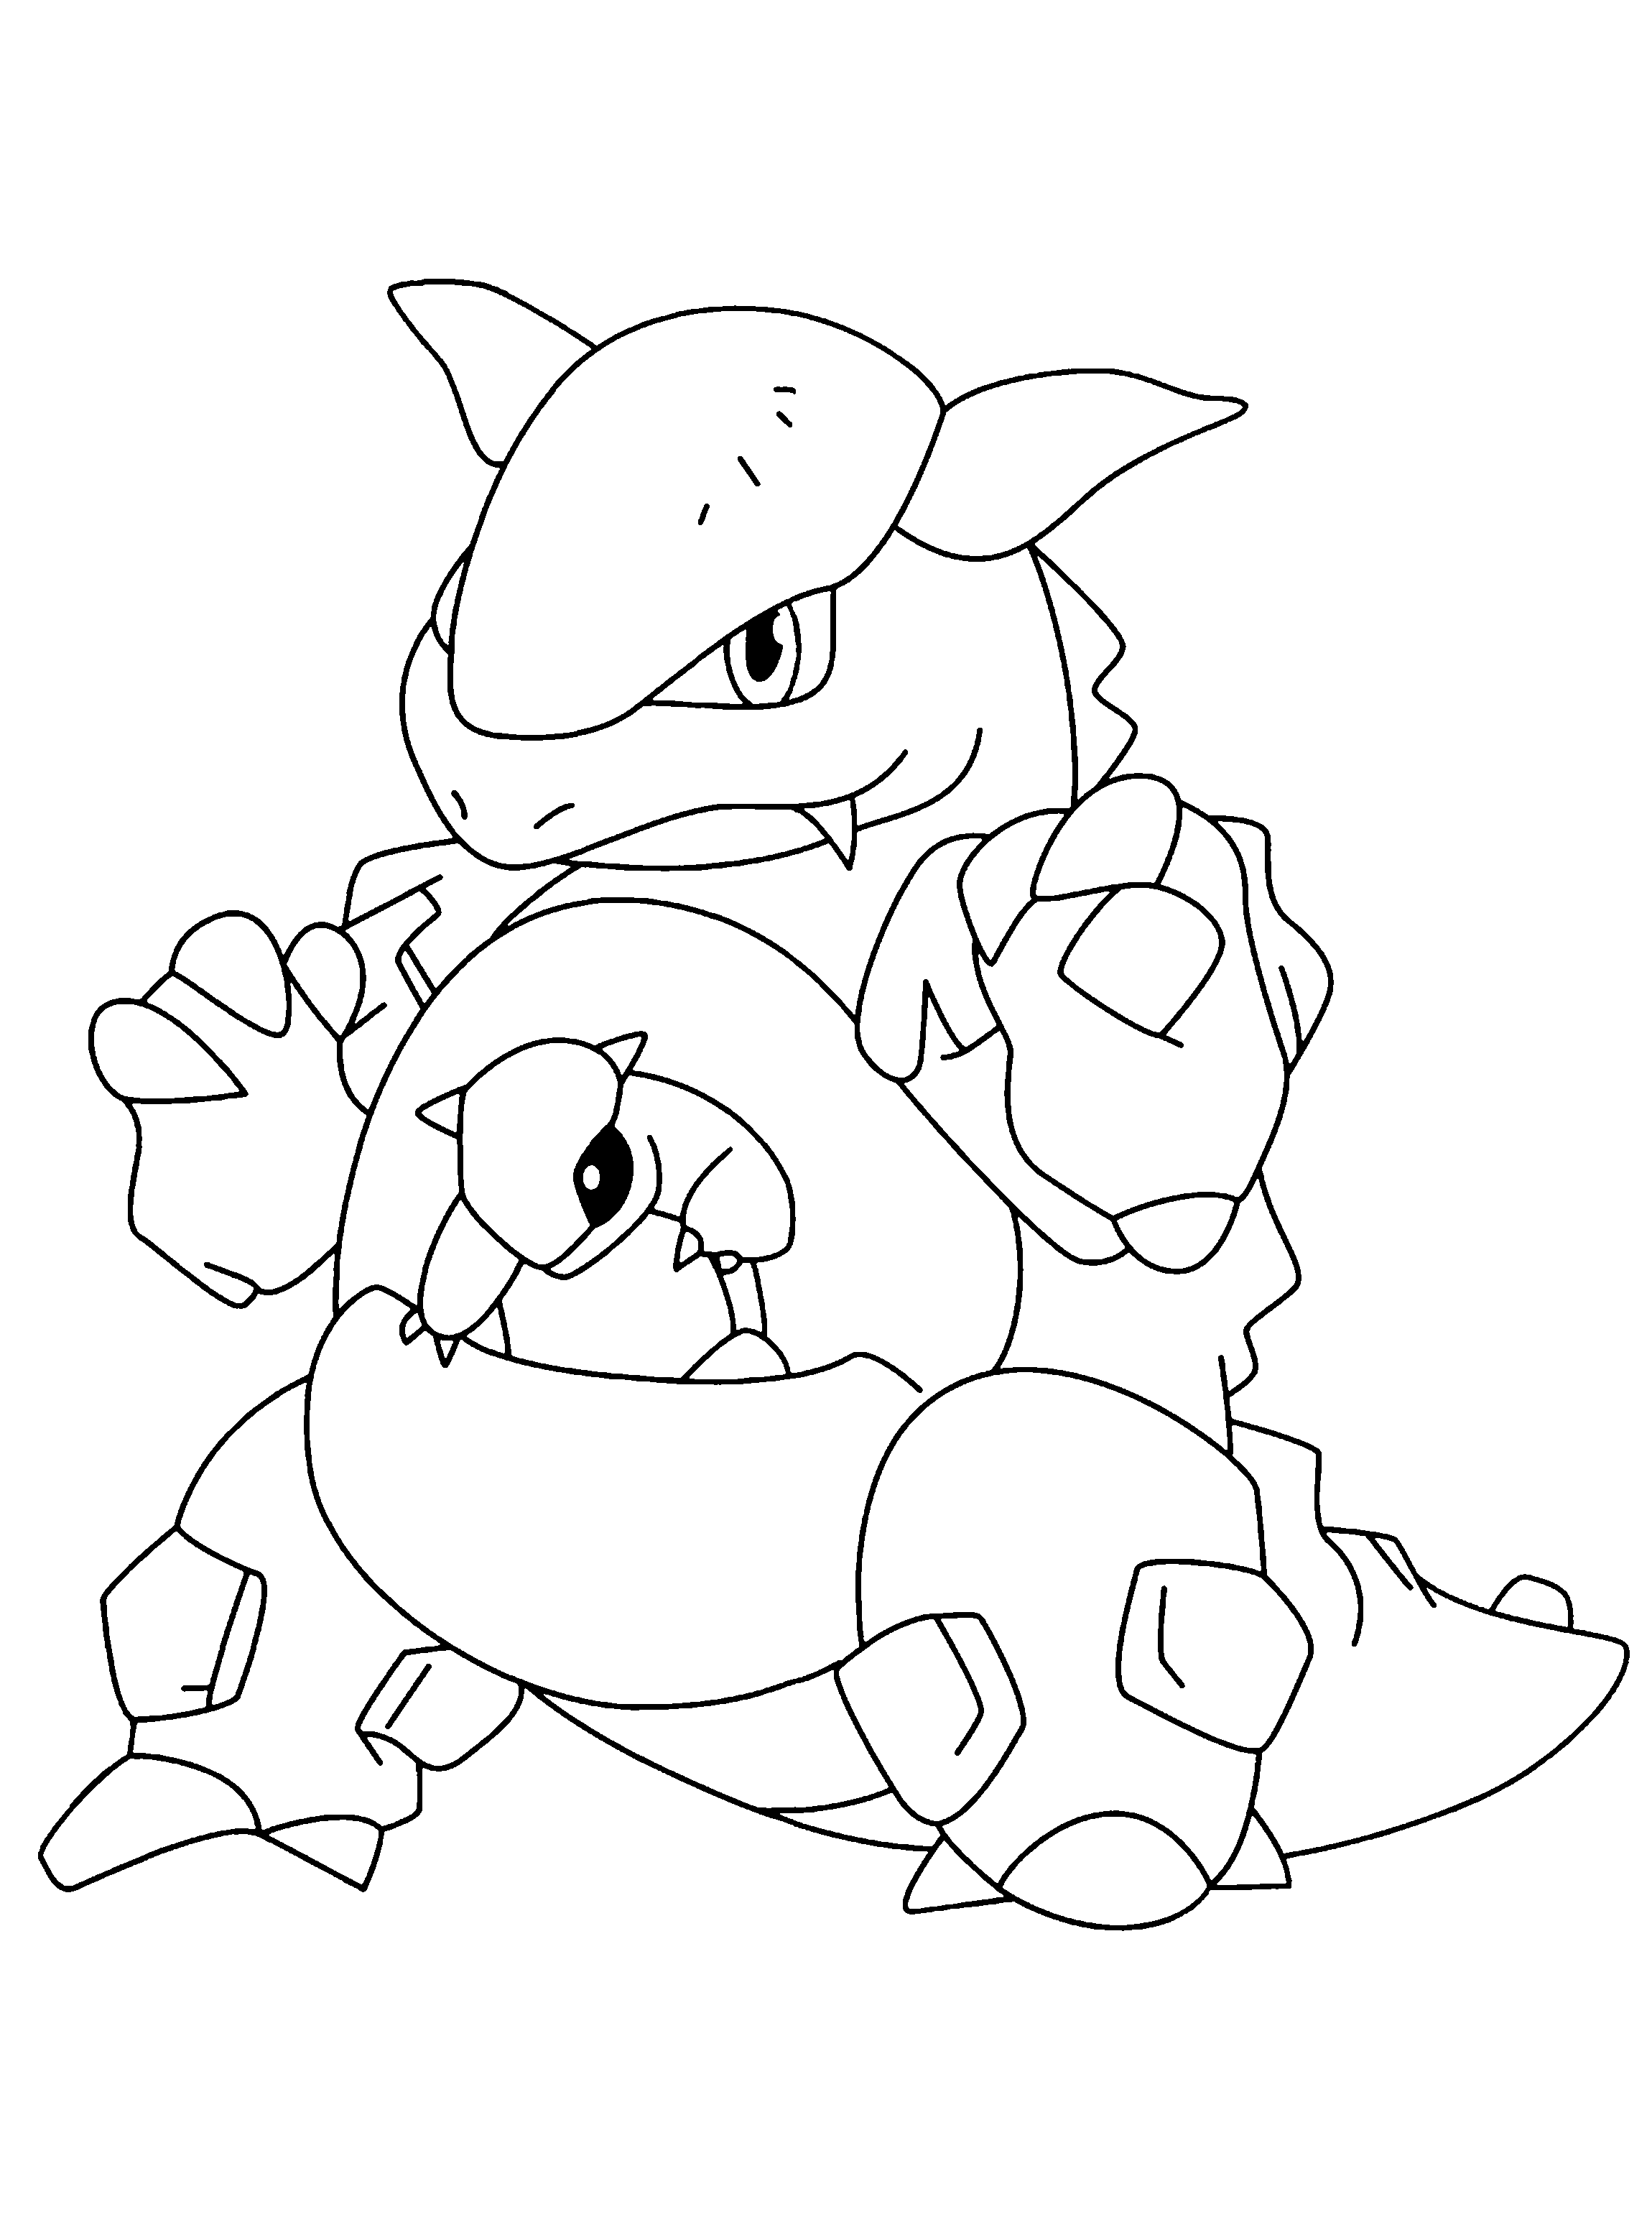 Pokemon Coloring Pages Mega Camerupt Best Ideas For Printable And